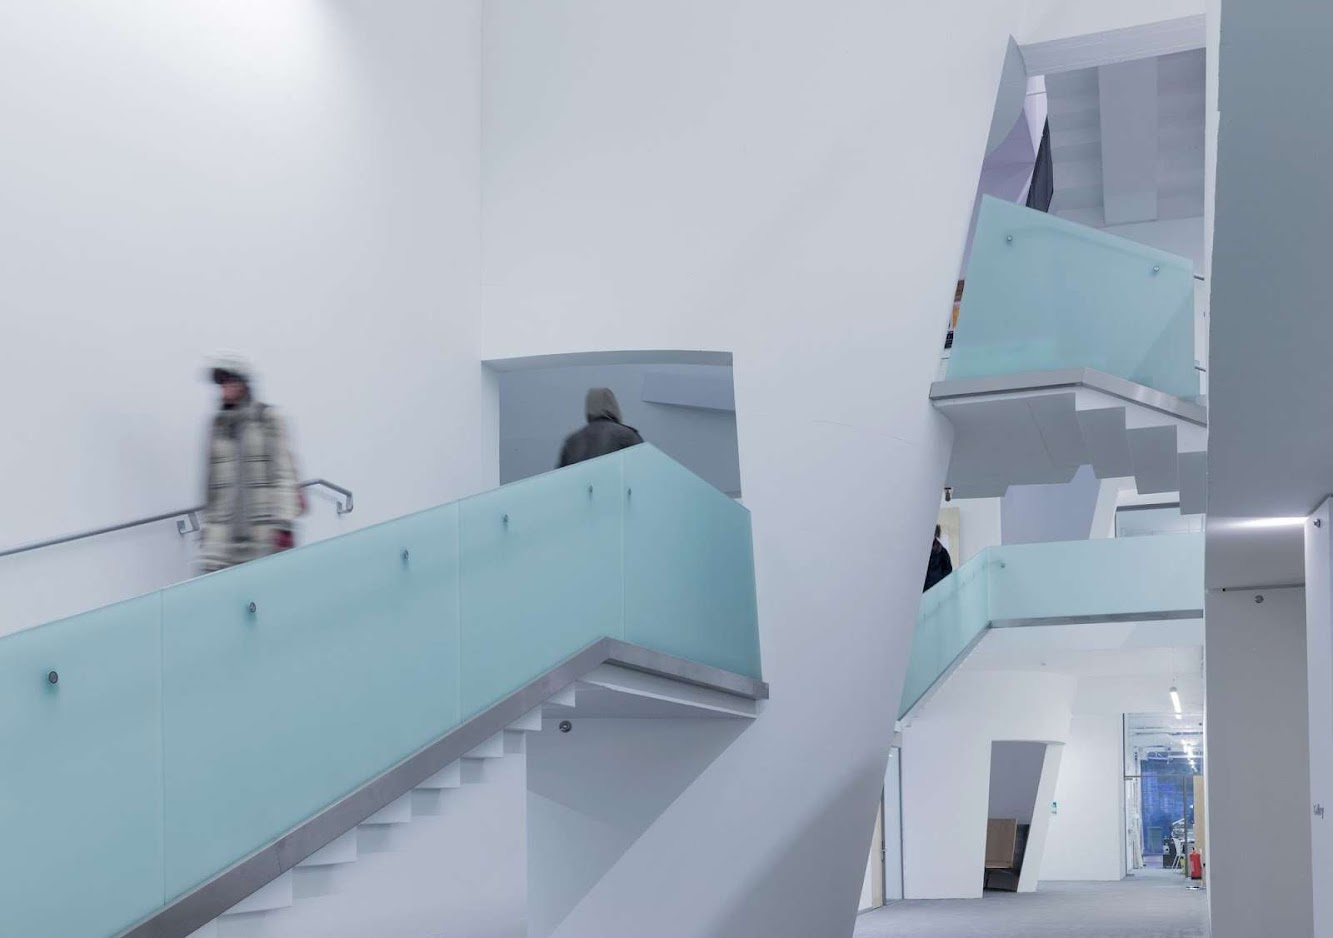 Seona Reid Building by Steven Holl Architects